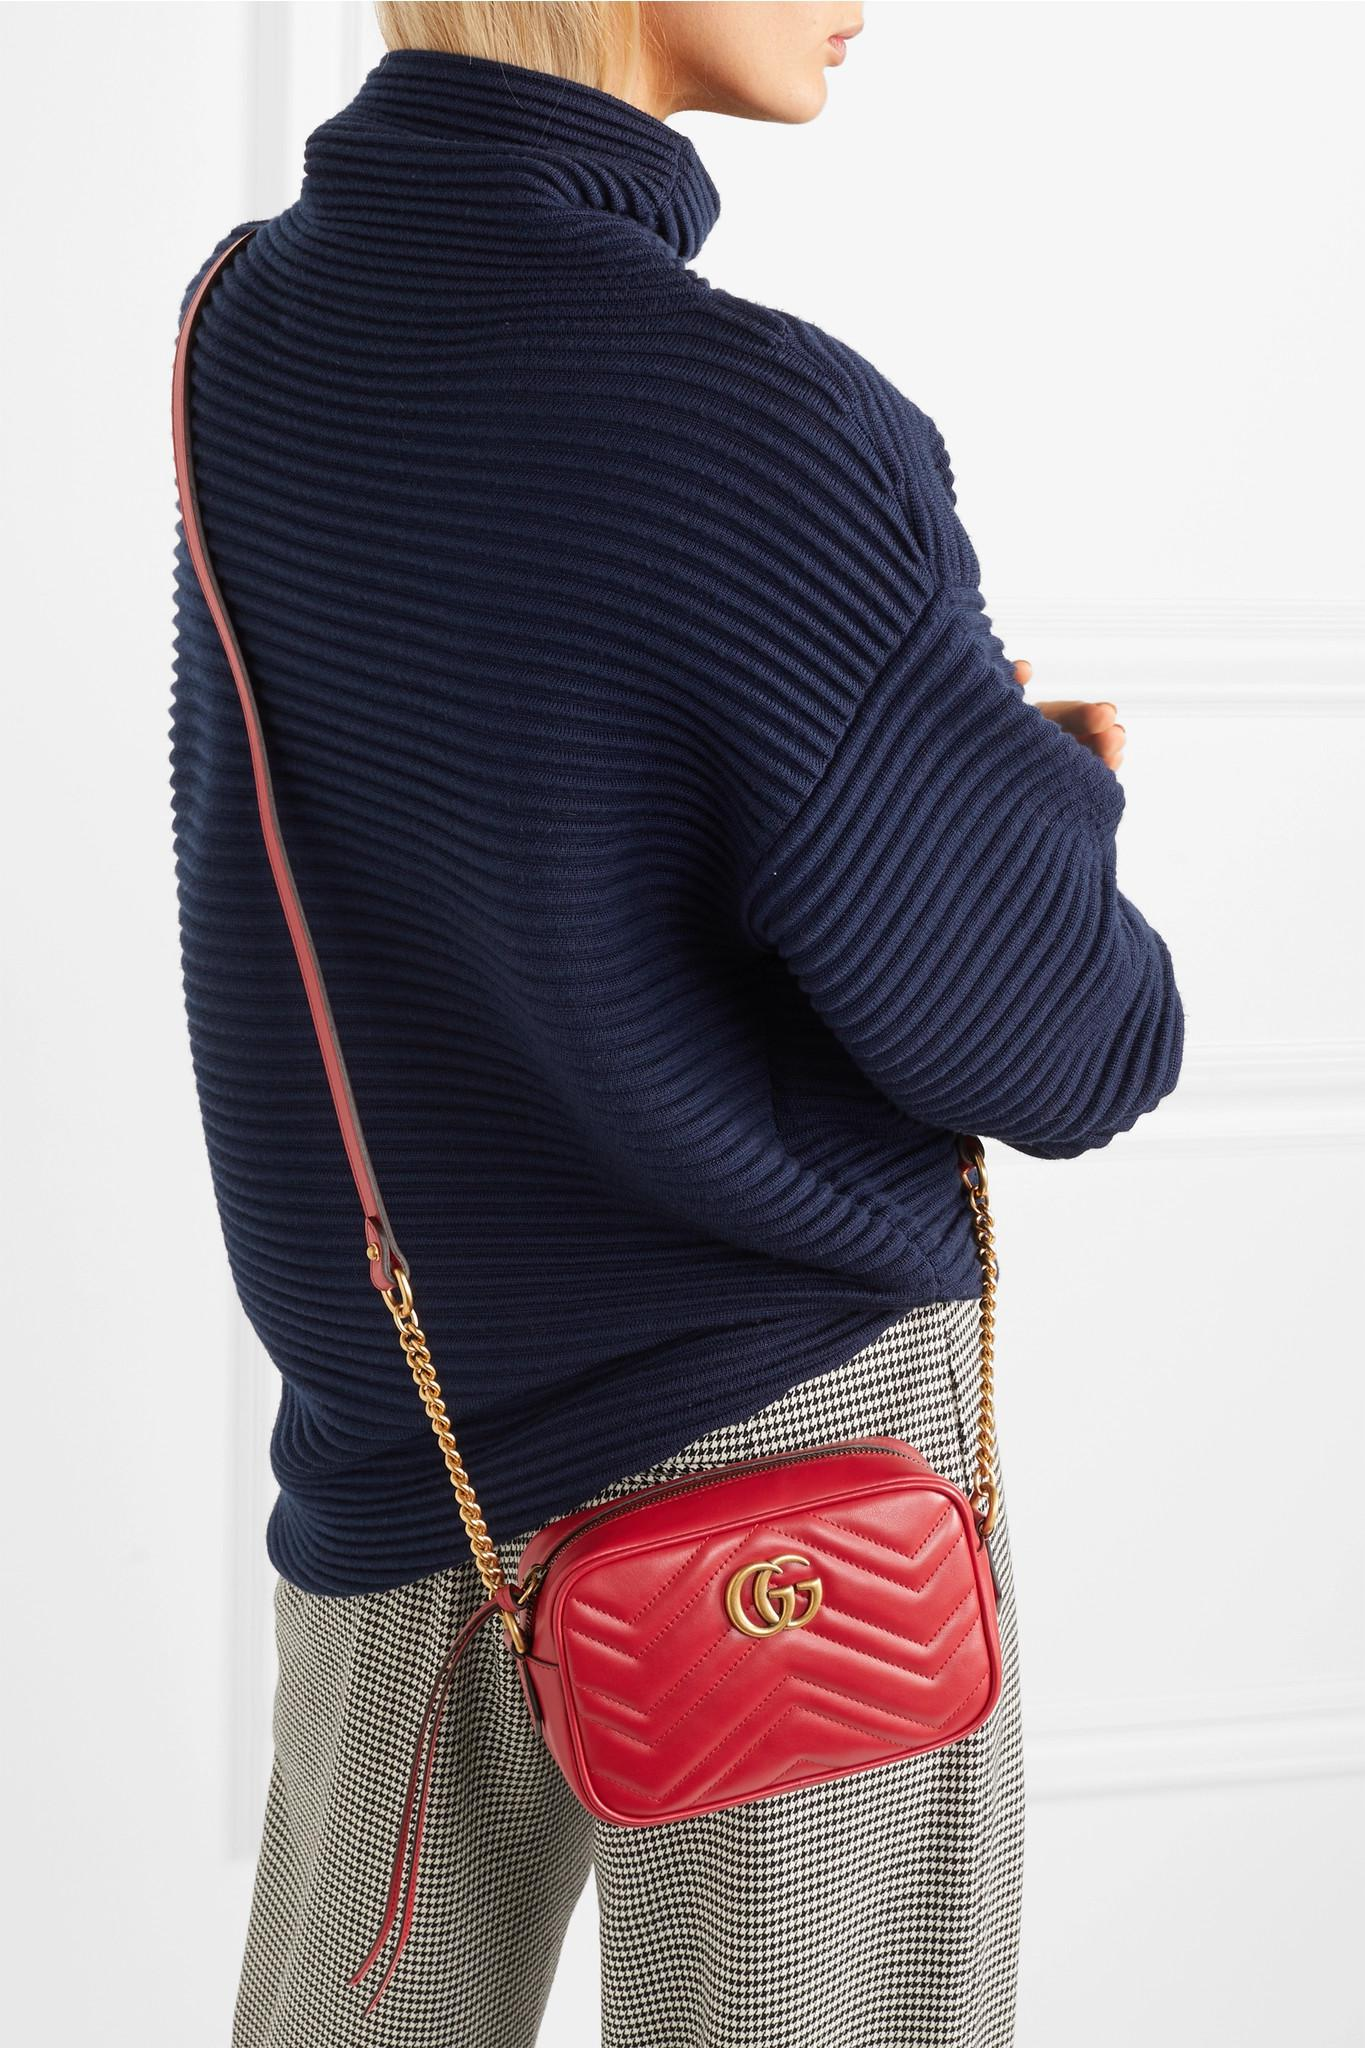 c41b0d6dde10 Gucci Gg Marmont Camera Mini Quilted Leather Shoulder Bag in Red - Lyst